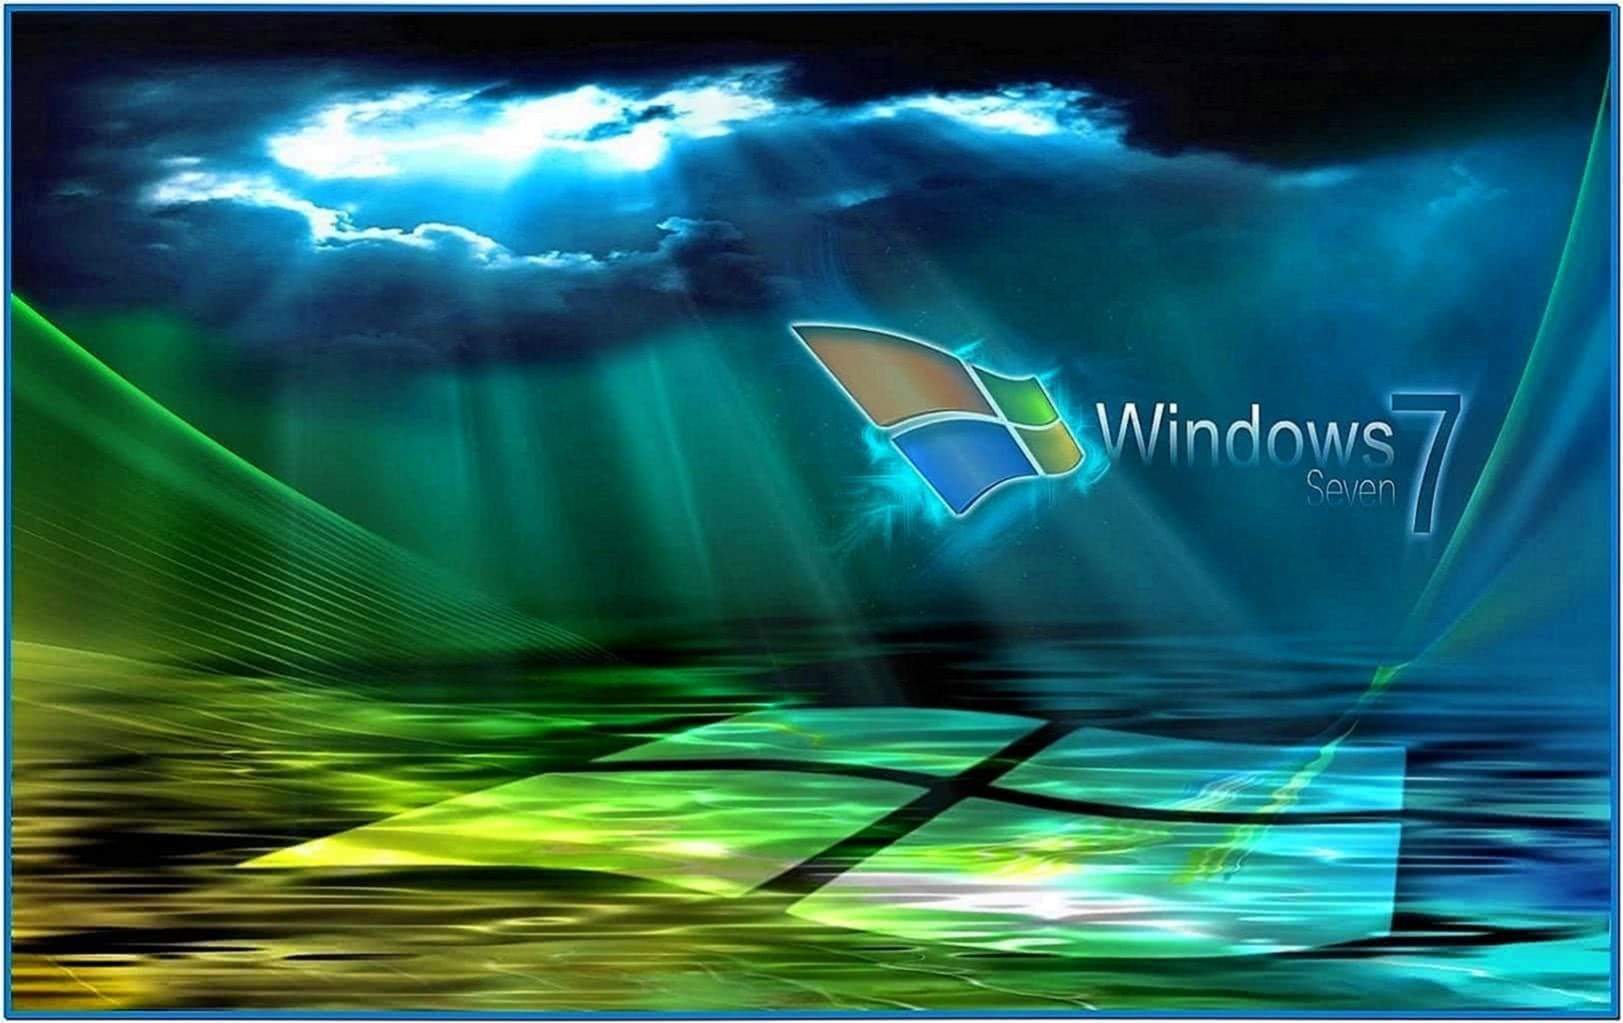 Screensaver Windows 7 in HD